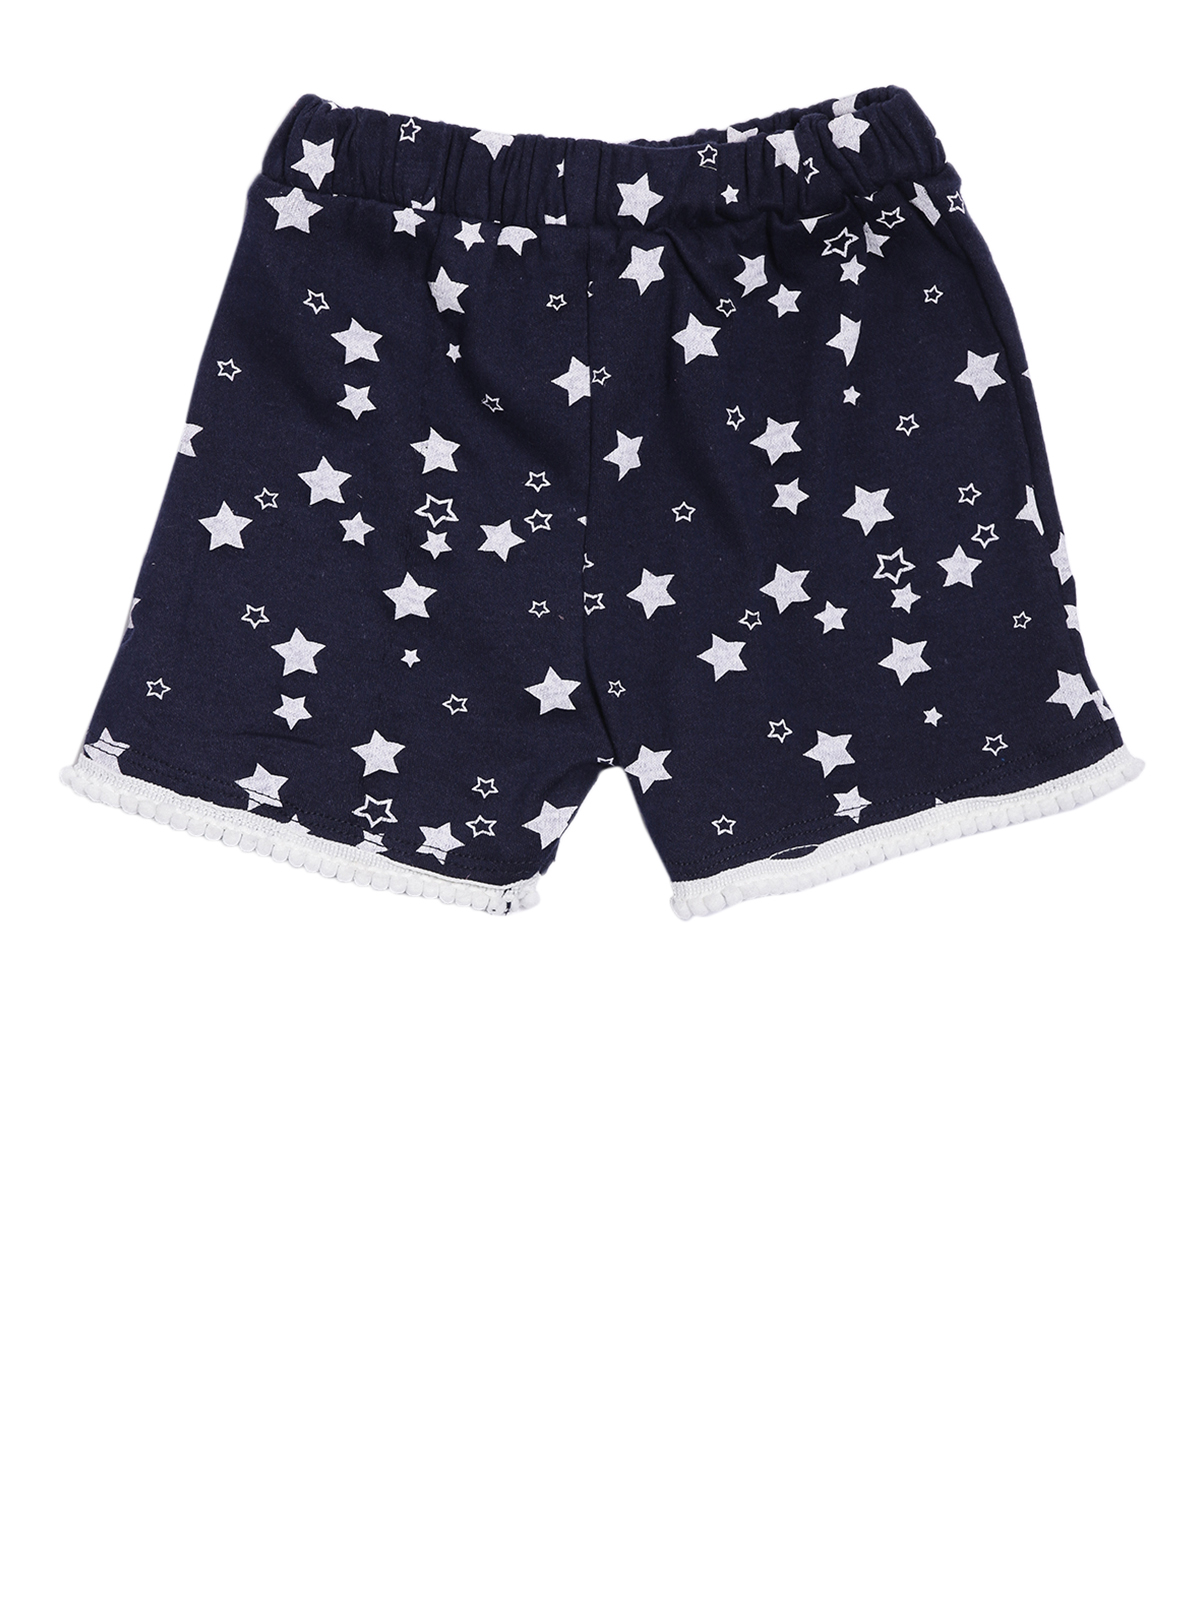 Kryptic | Kryptic girls 100% Cotton printed shorts with pompom